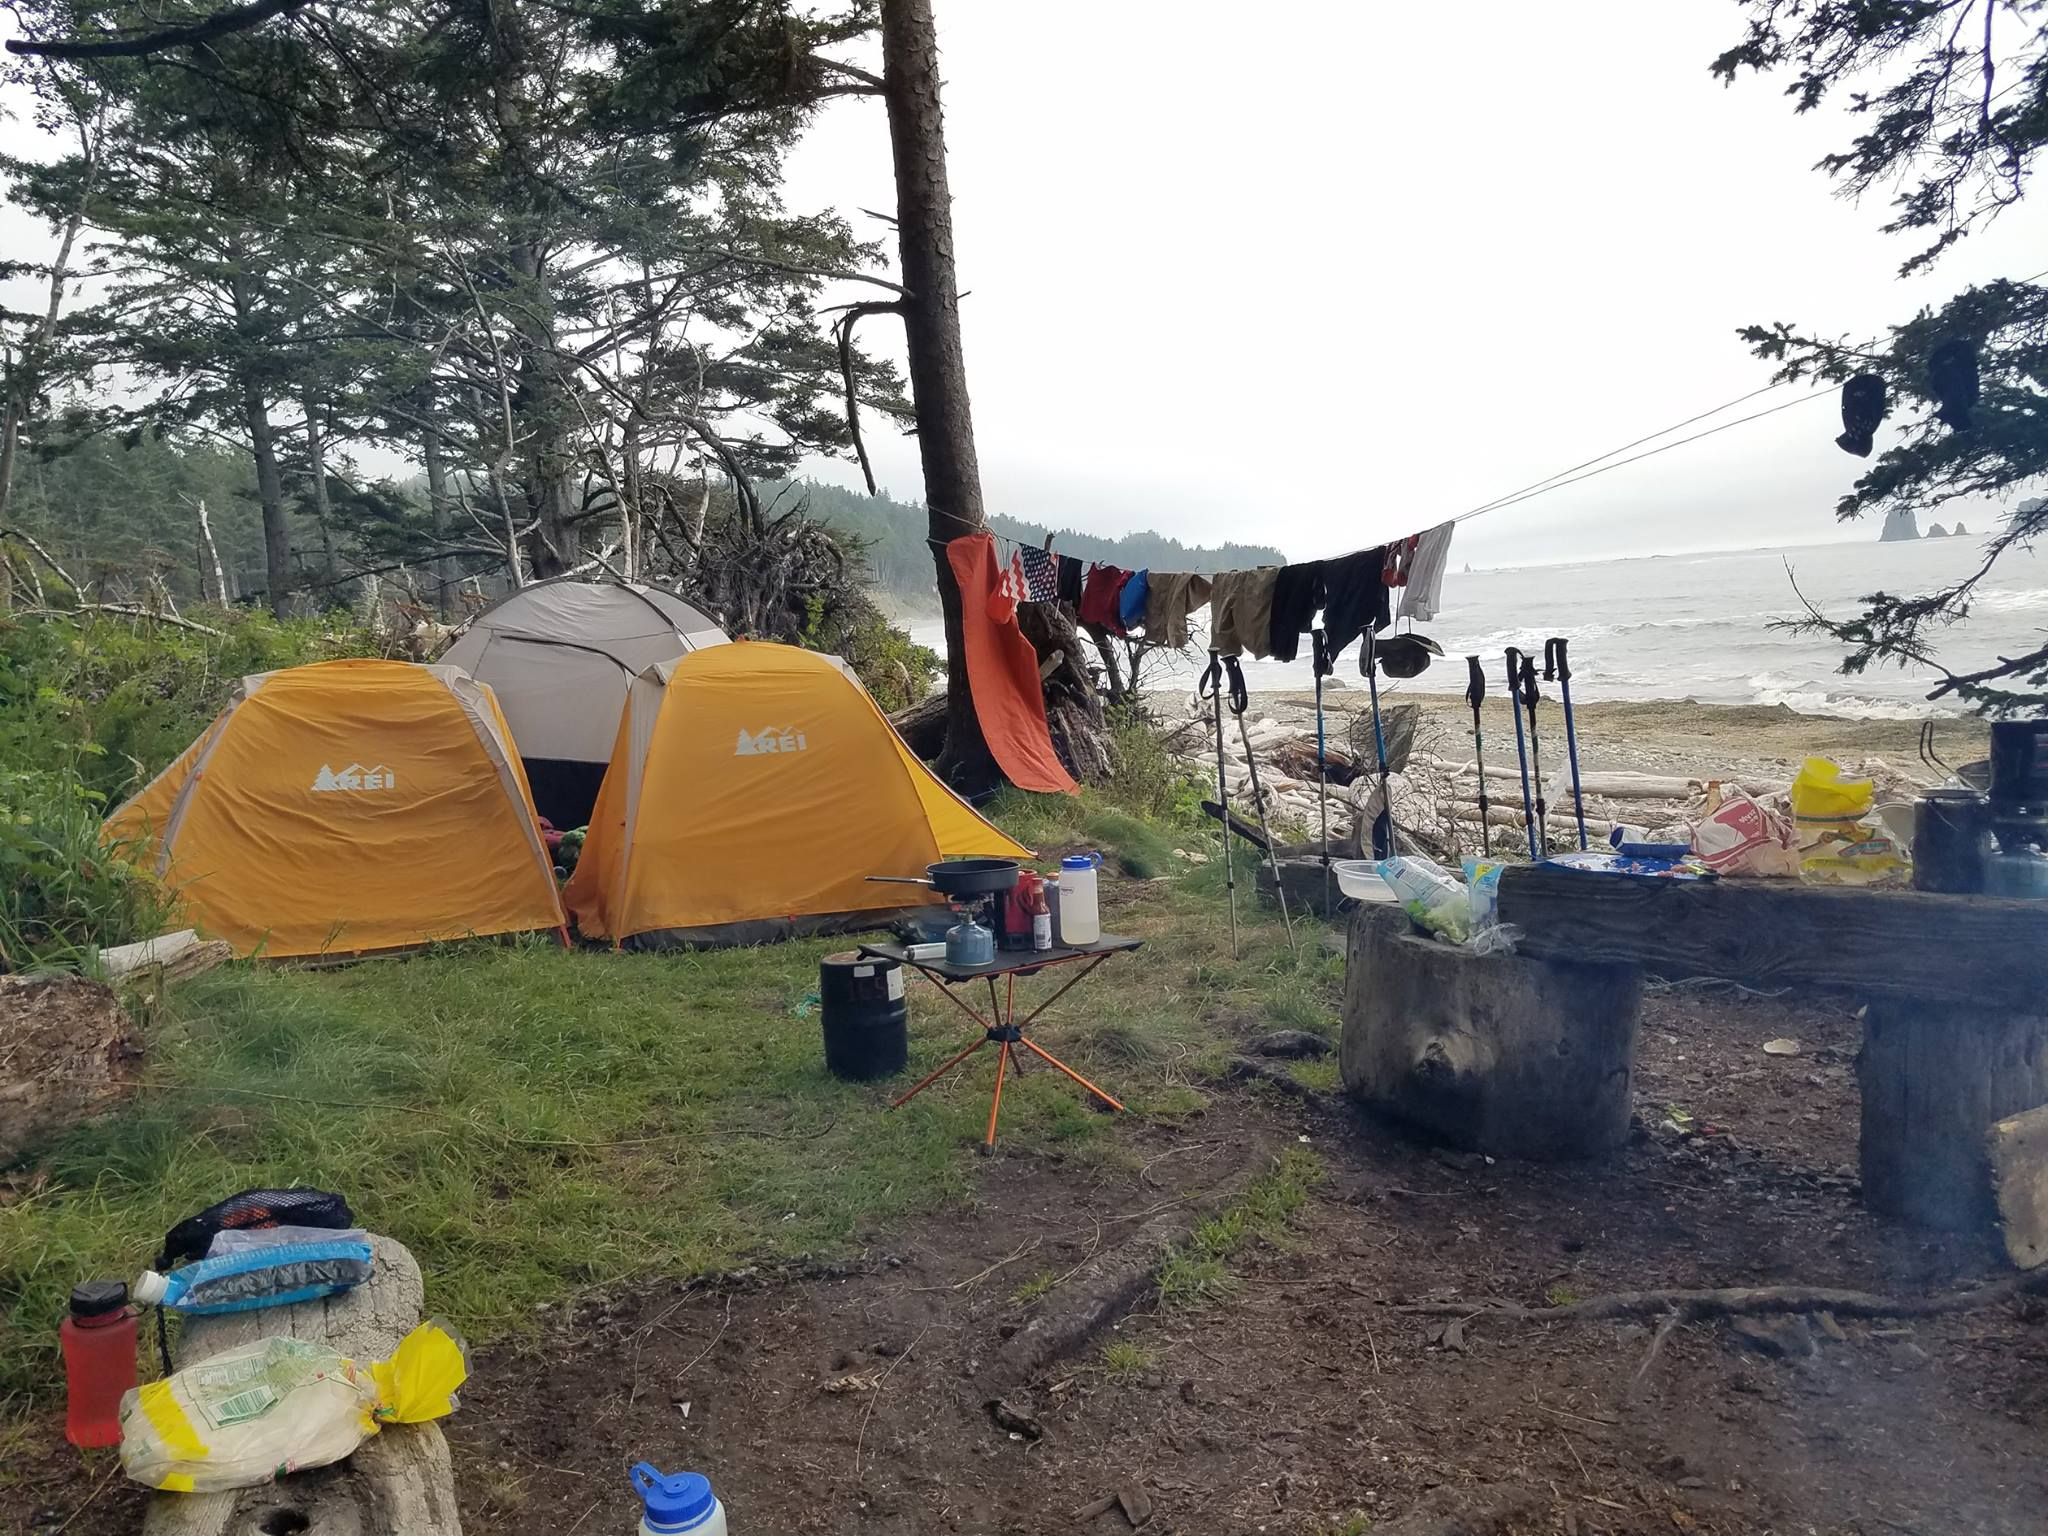 Colter-co-backpacking-washington-50-miler